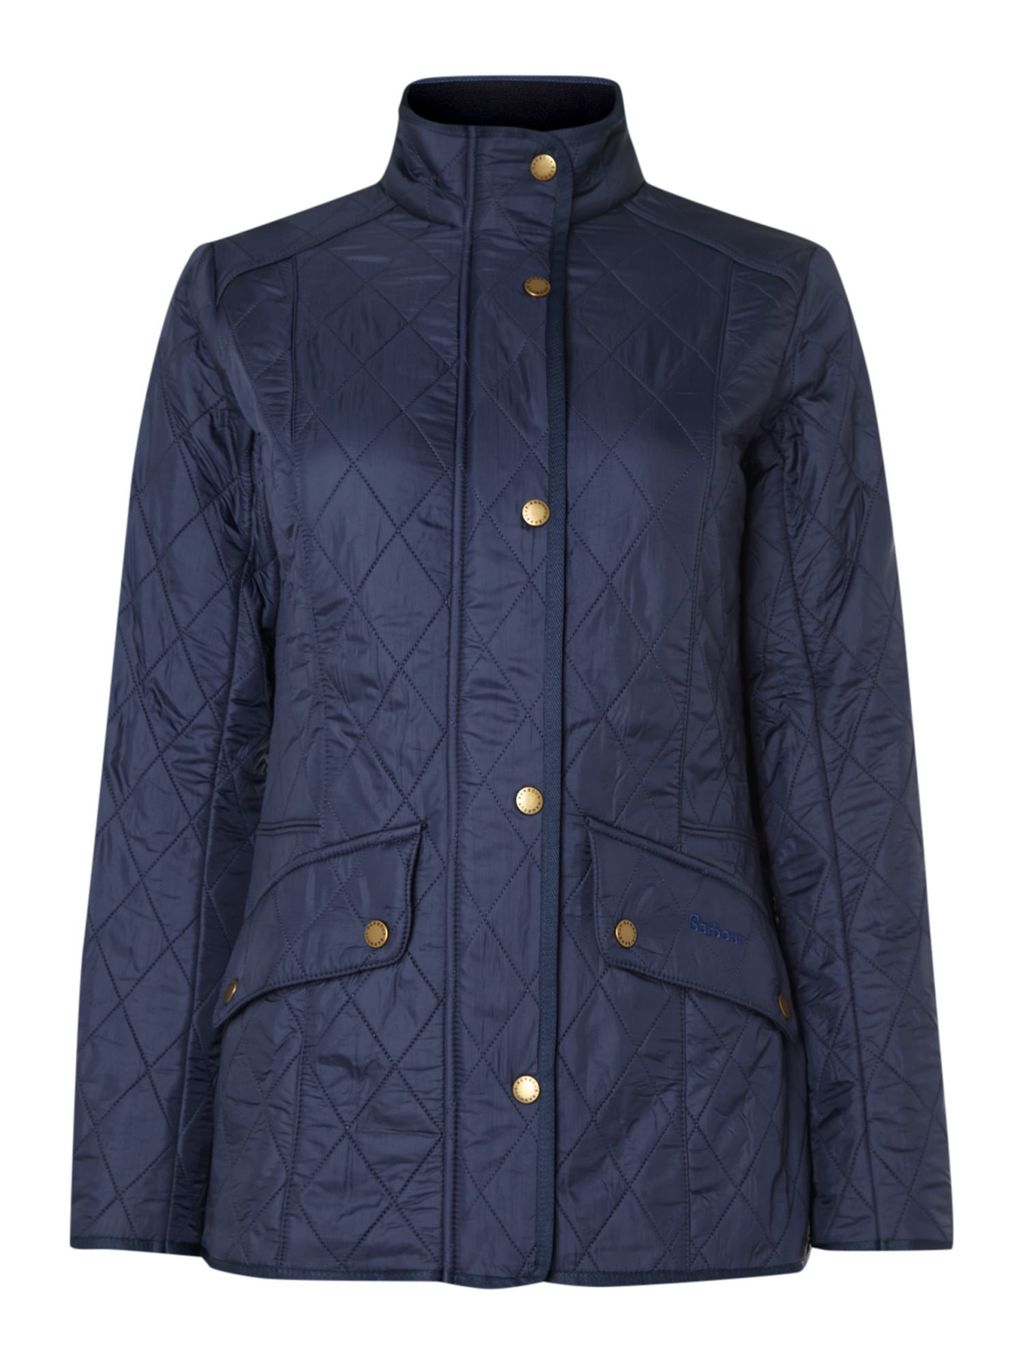 Cavalary Polarquilt Jacket, Blue - pattern: plain; length: standard; style: quilted; collar: high neck; predominant colour: navy; occasions: casual; fit: straight cut (boxy); fibres: polyester/polyamide - 100%; hip detail: subtle/flattering hip detail; sleeve length: long sleeve; sleeve style: standard; texture group: technical outdoor fabrics; collar break: high; pattern type: fabric; season: a/w 2014